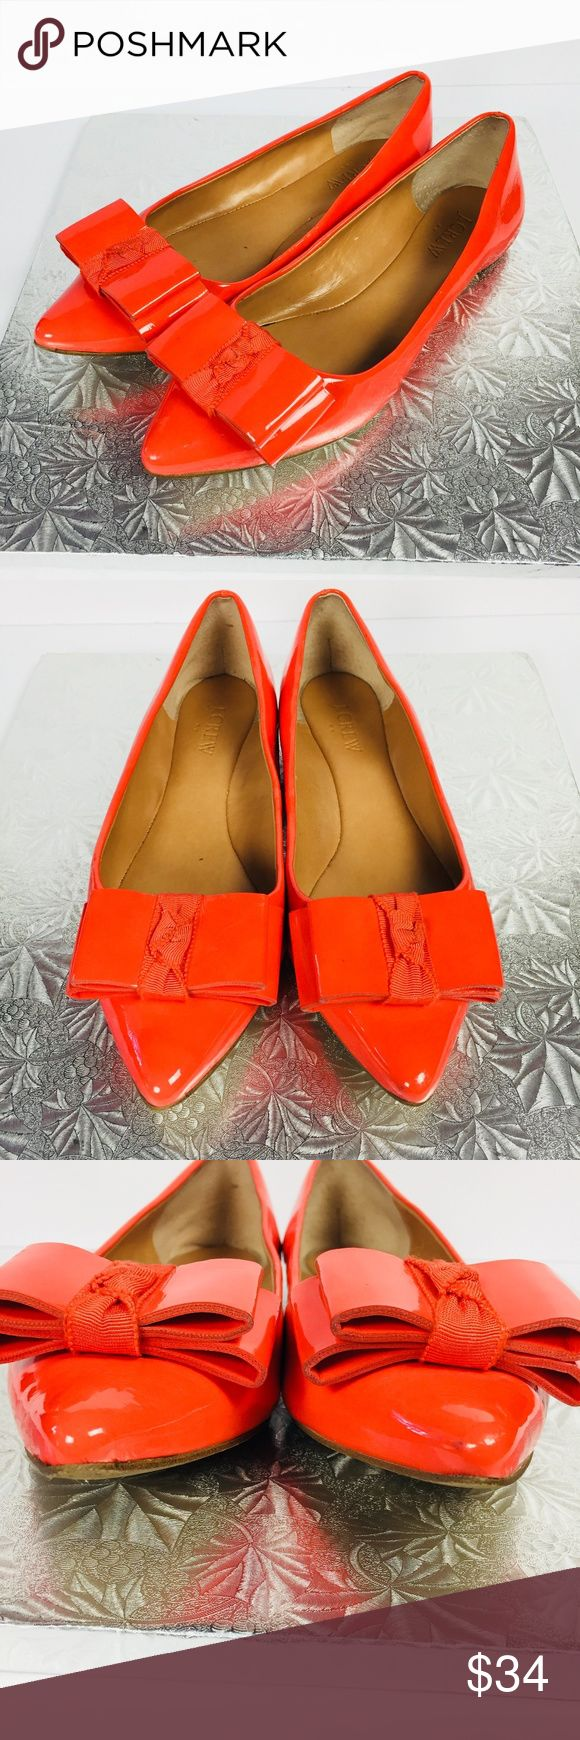 J Crew Womens Factory Size 6.5 Emery Flat Orange Poppy orange, ballet flats with a pointed toe and bow on front. Wear on bottom and small crease on inside of right shoe, see photos. J. Crew Shoes Flats & Loafers